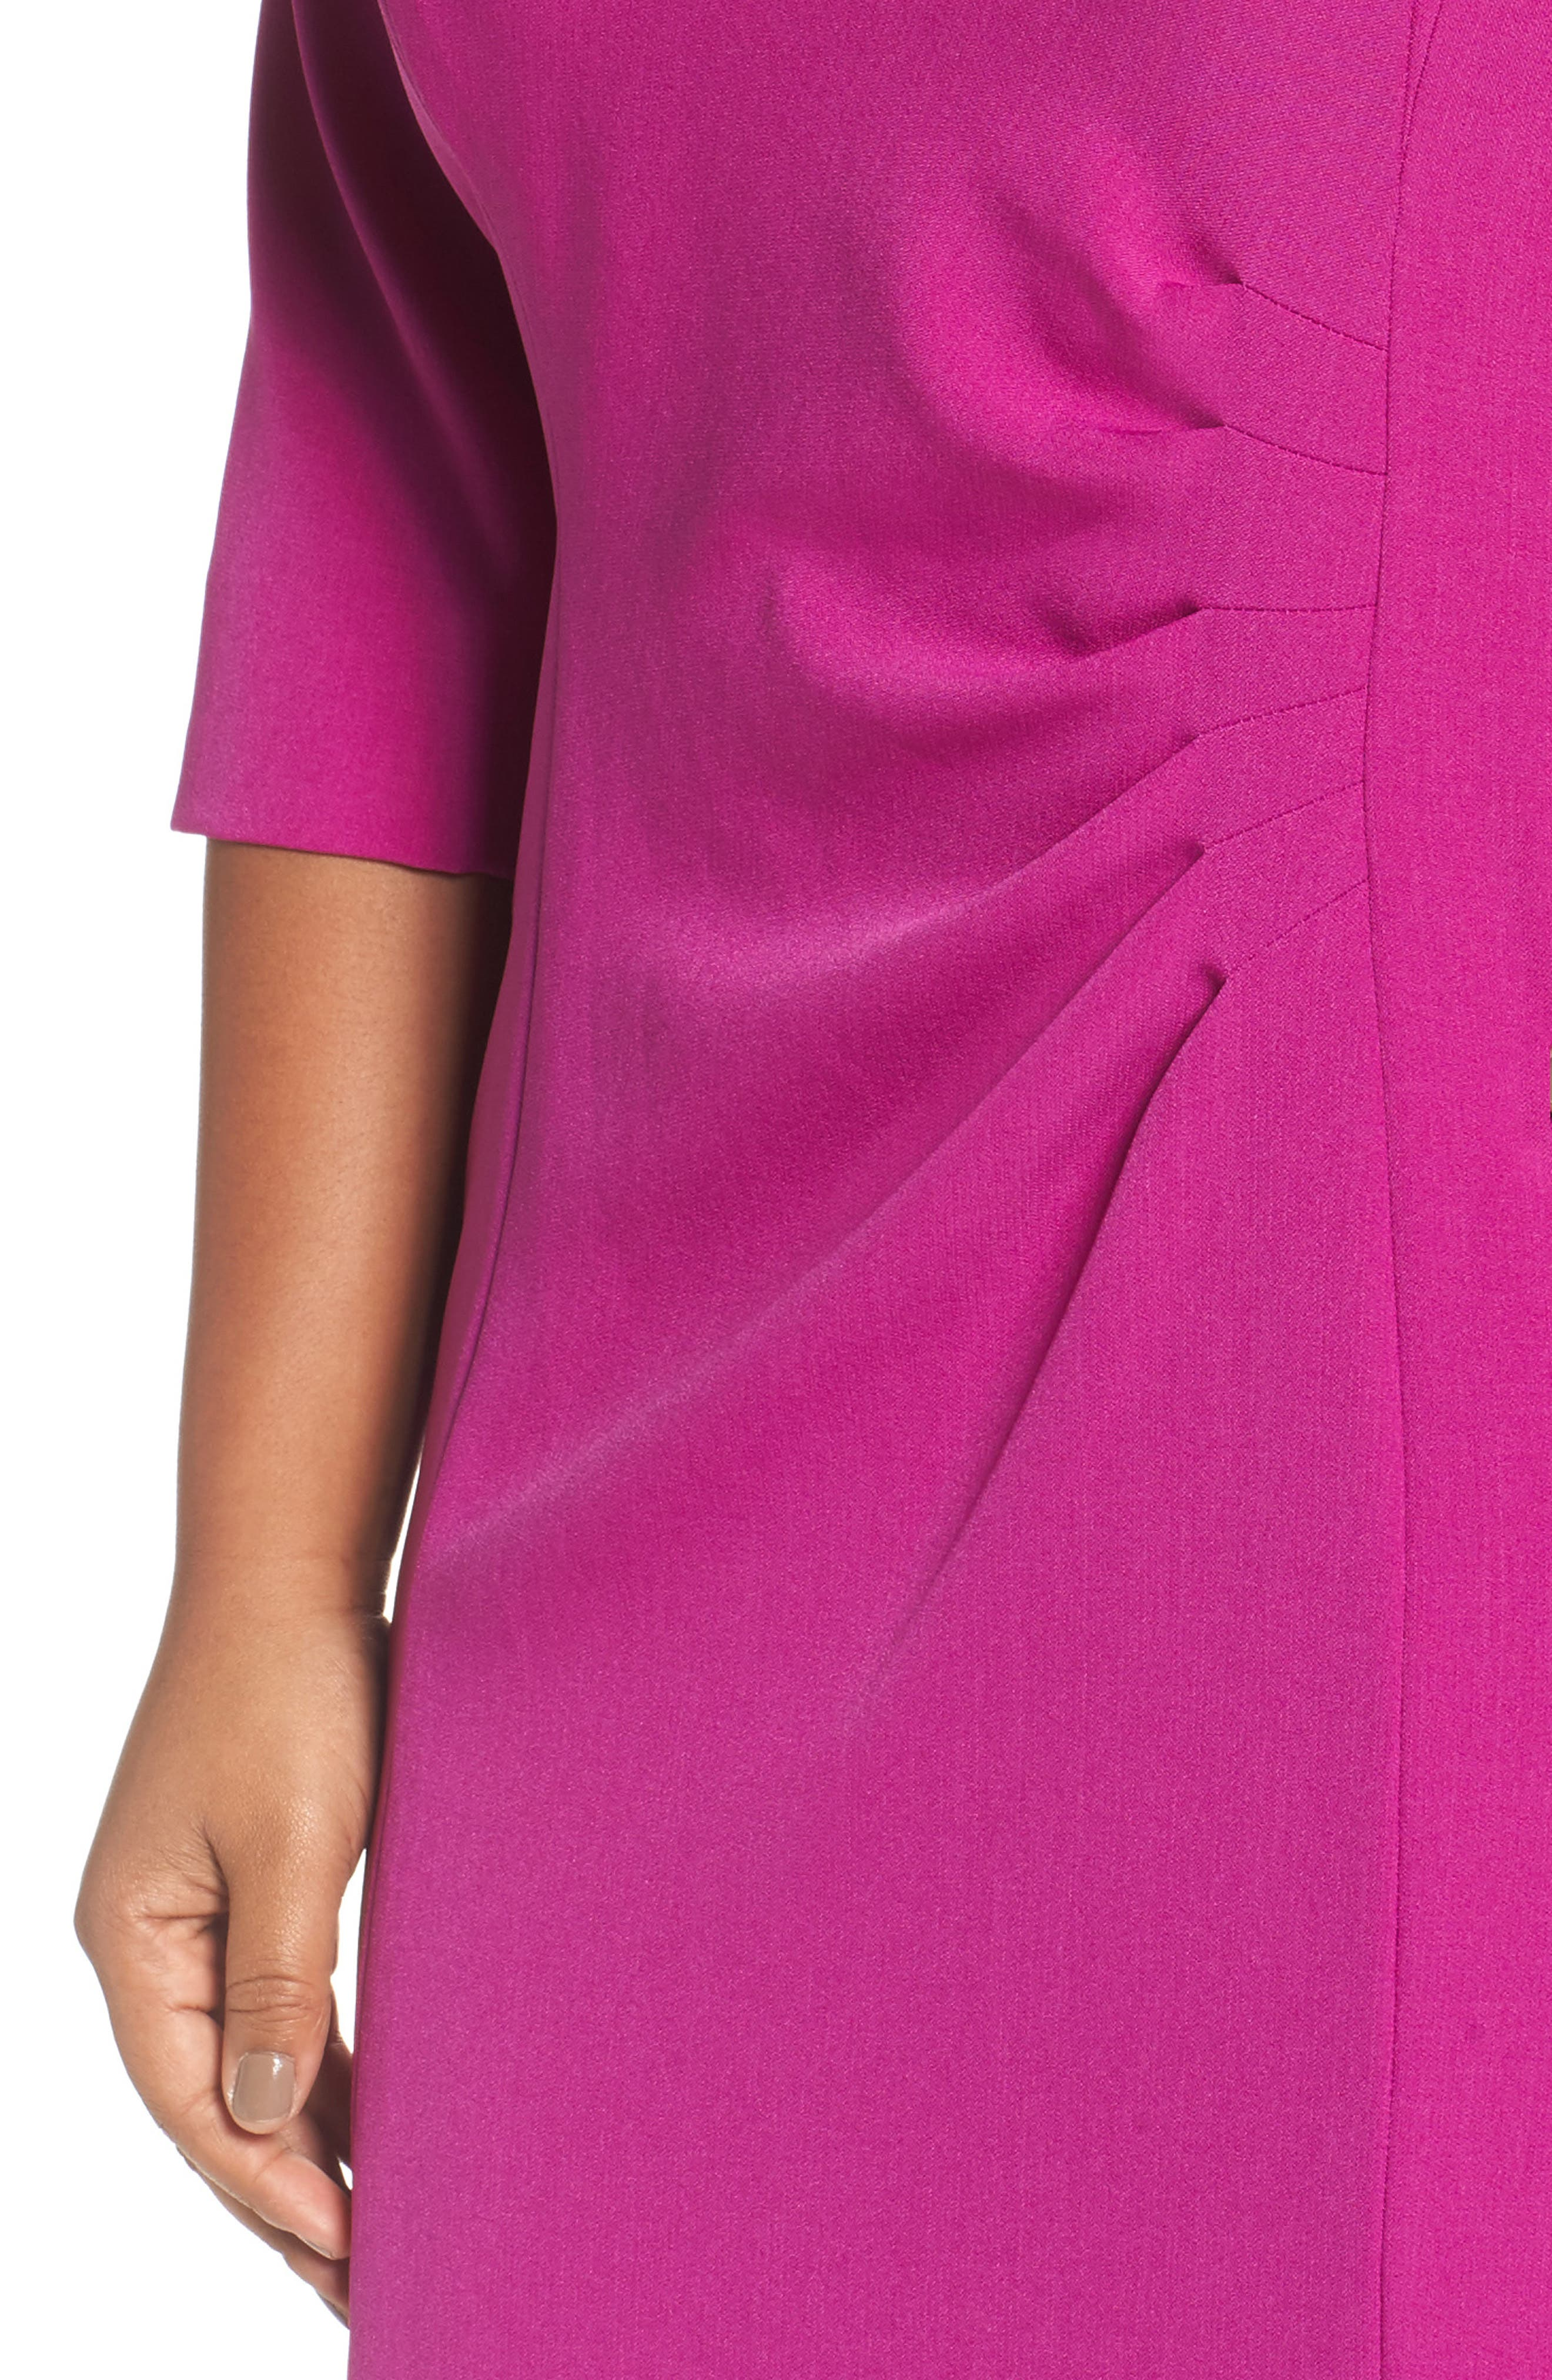 Ruched Sheath Dress,                             Alternate thumbnail 4, color,                             501